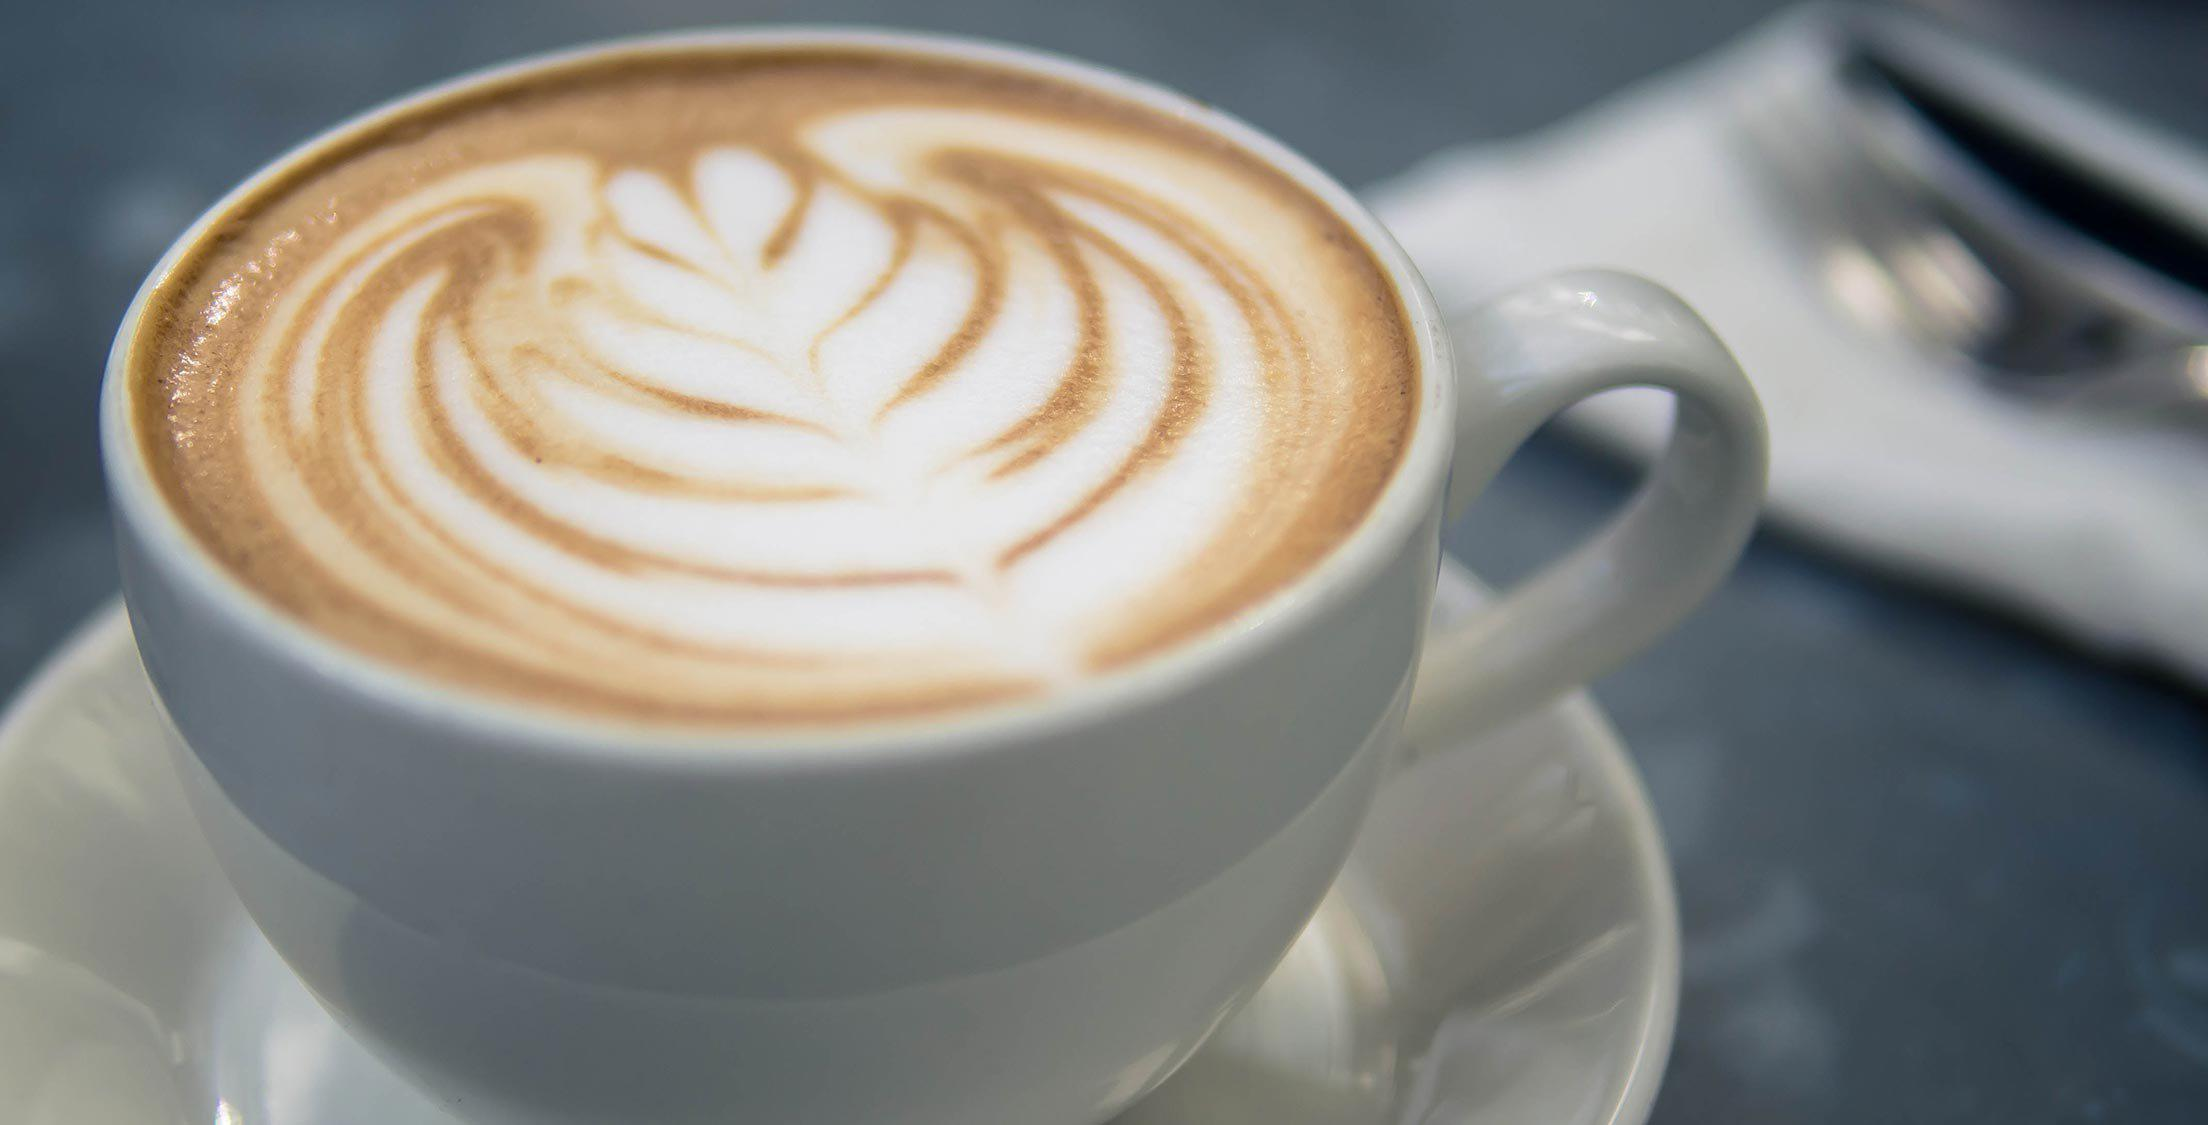 5 things you could buy if you gave up coffee